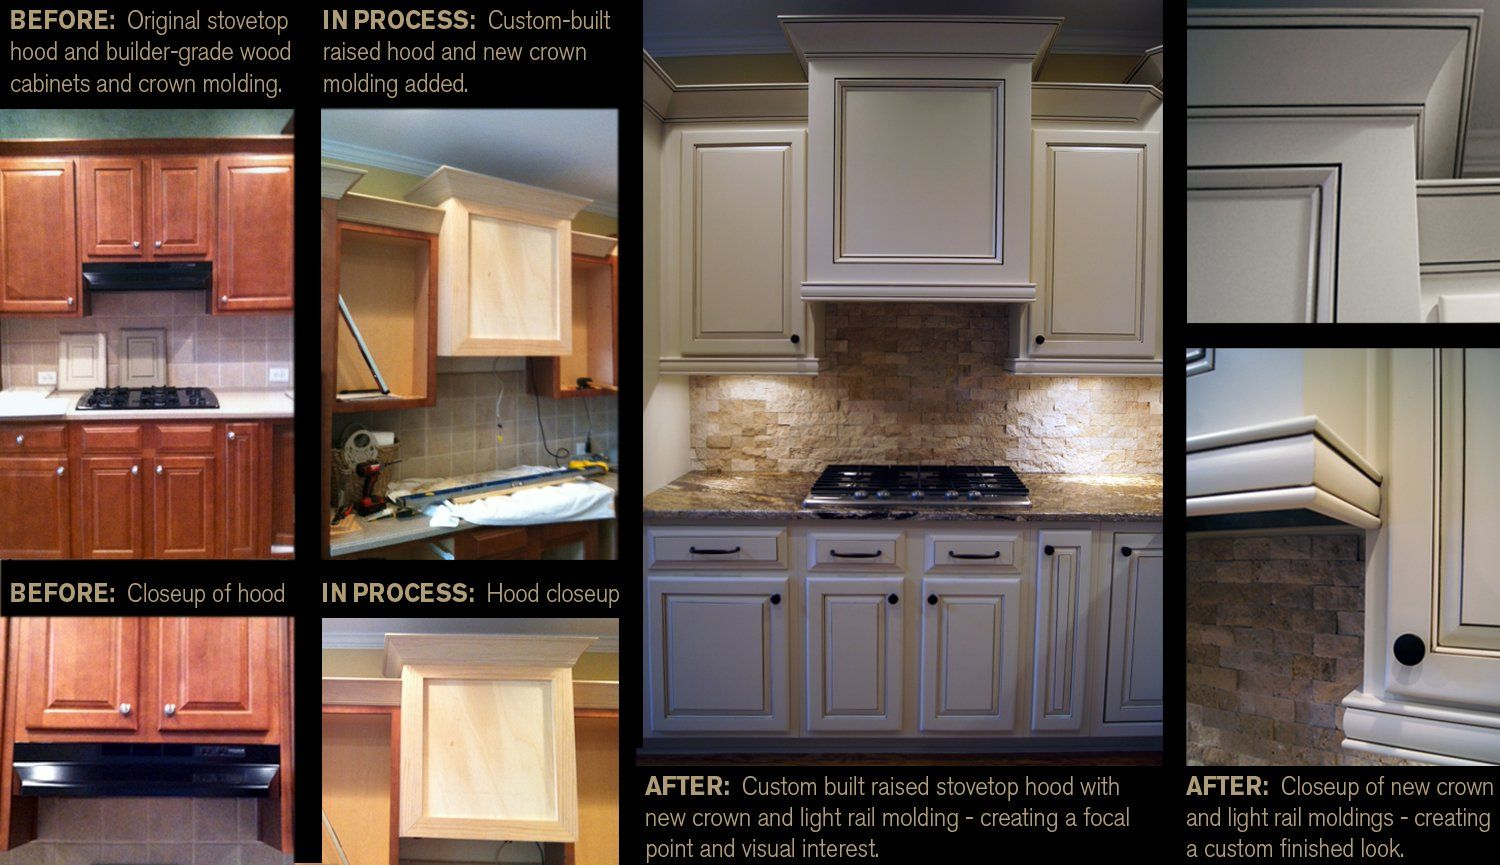 Creative cabinets andfaux finishes llc ccff before and after